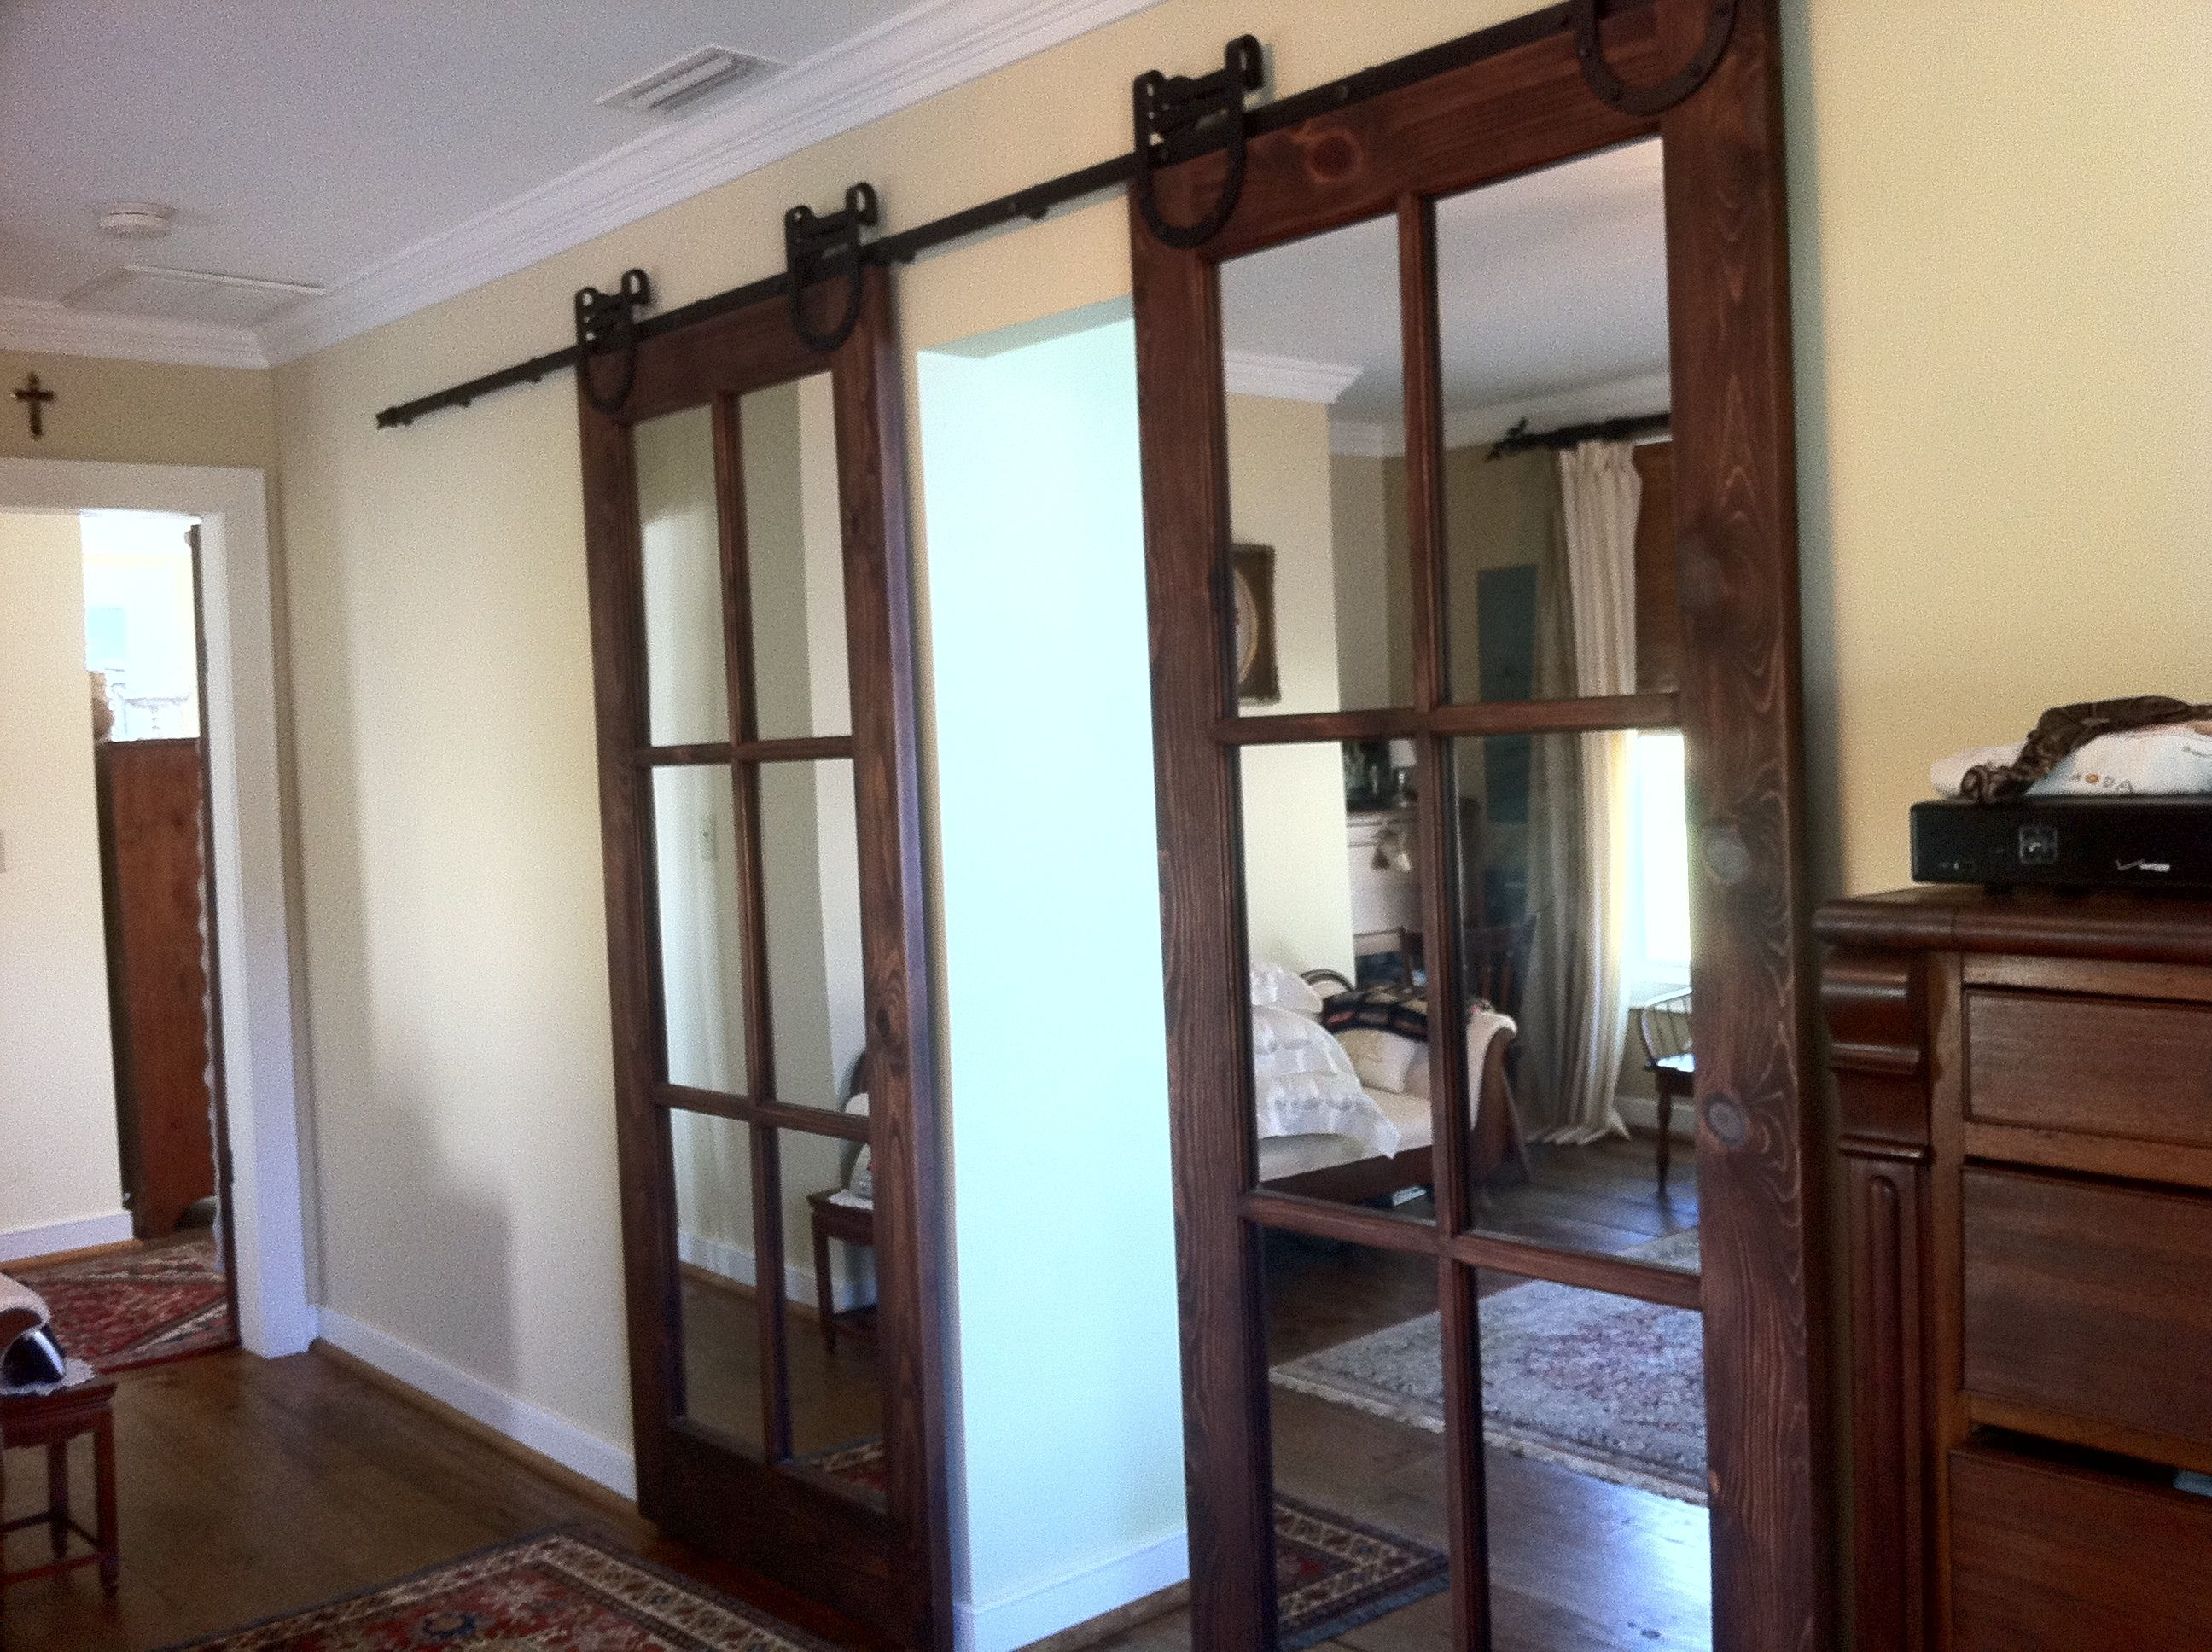 Sliding interior barn doors for sale - We Currently Have A Standard French Door Between The Kitchen And Living Room But Would Interior Sliding Barn